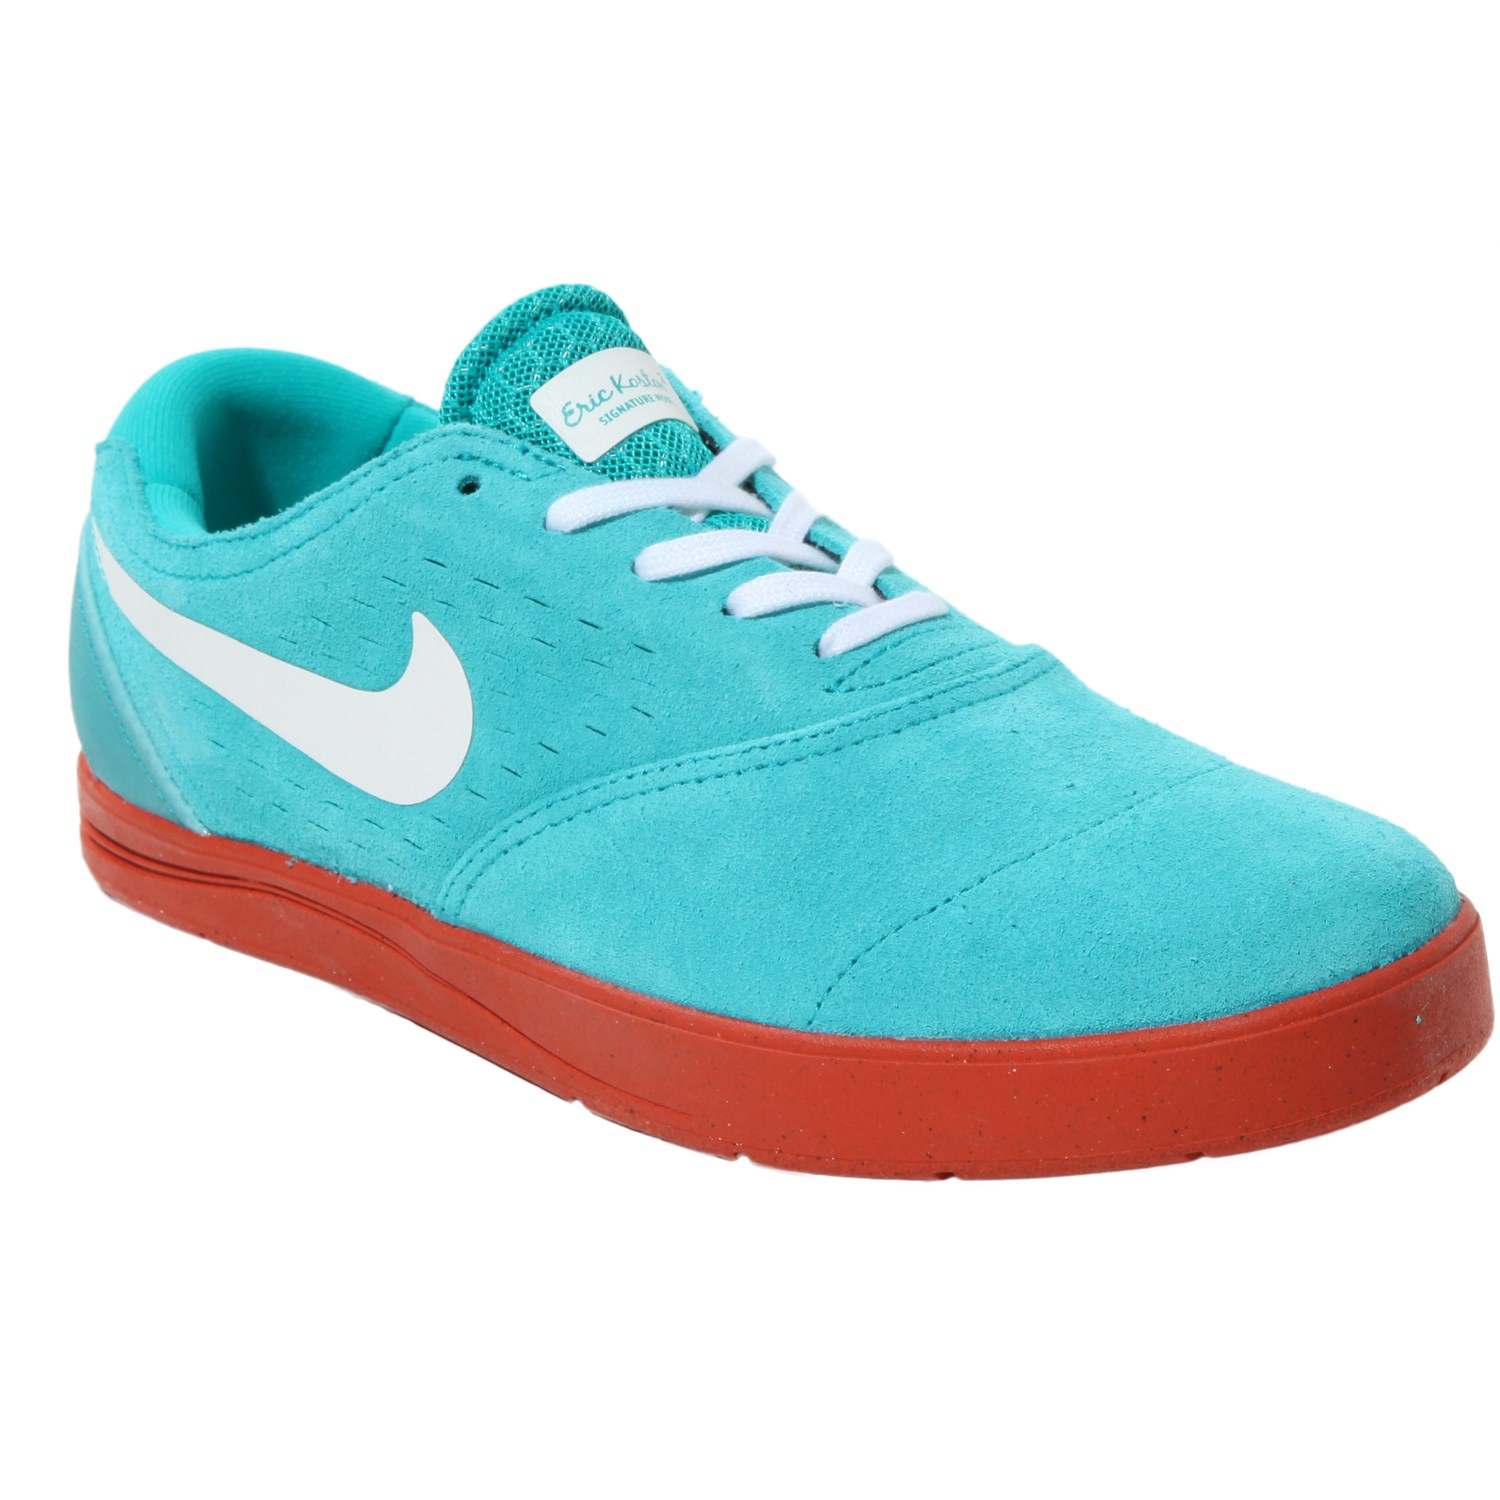 aa2c75684438 Nike eric koston shoes evo jpg 1500x1500 Koston shoes